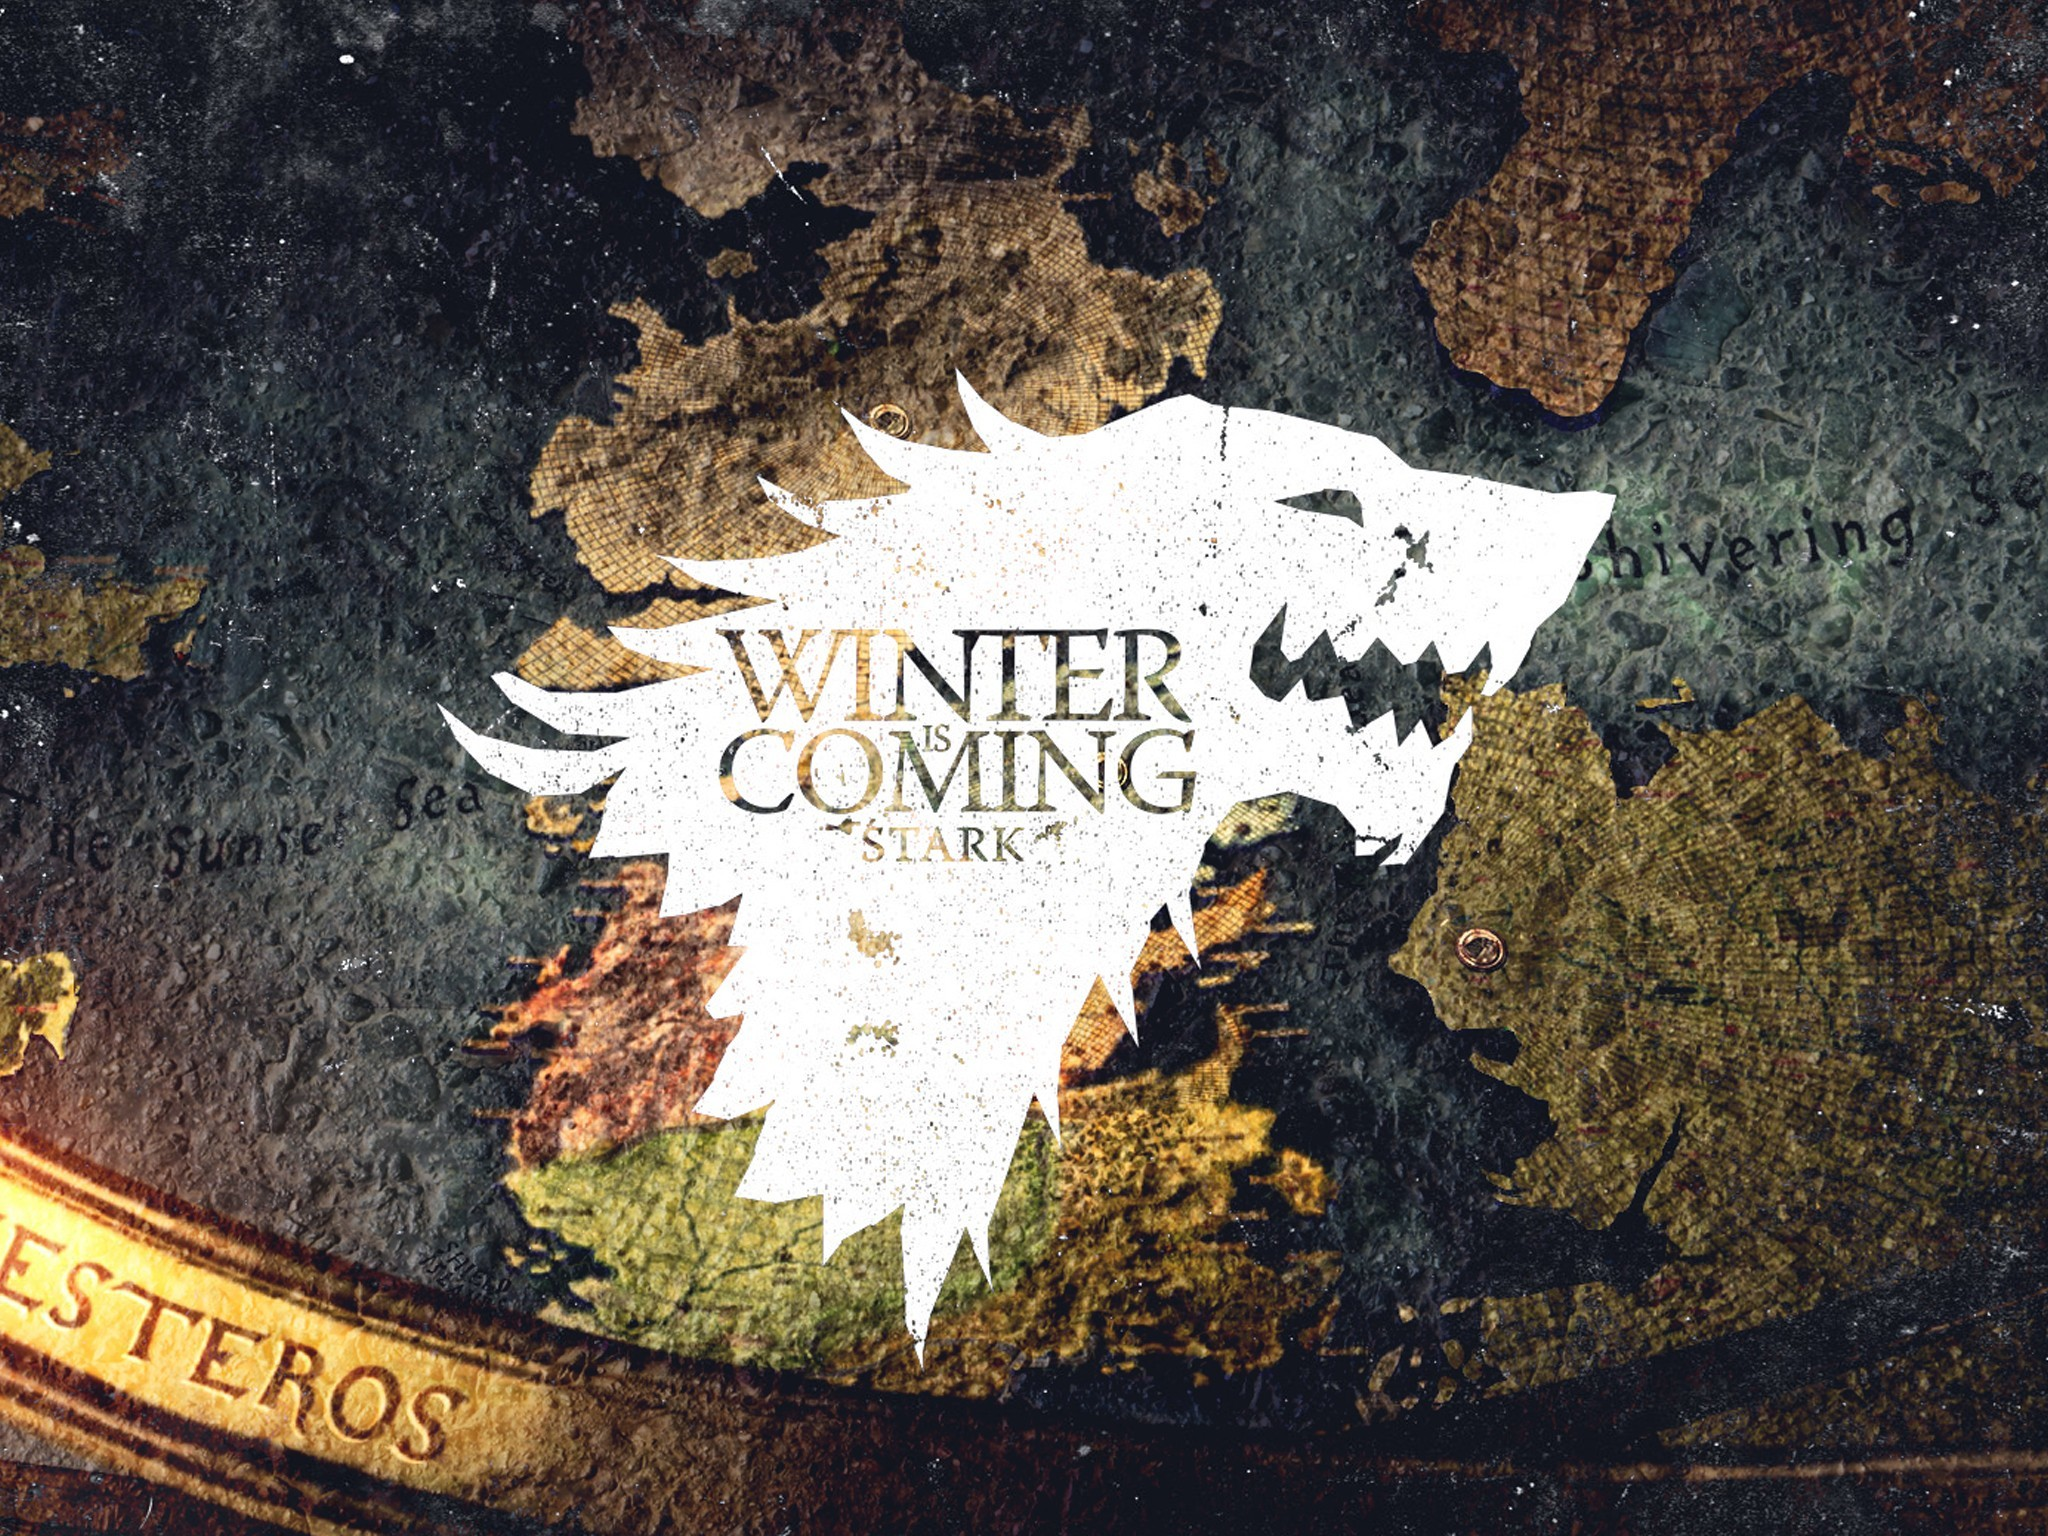 2048x1536 Crest Game of Thrones Winter is Coming direwolf House Stark wolves wallpaper  |  | 218007 | WallpaperUP